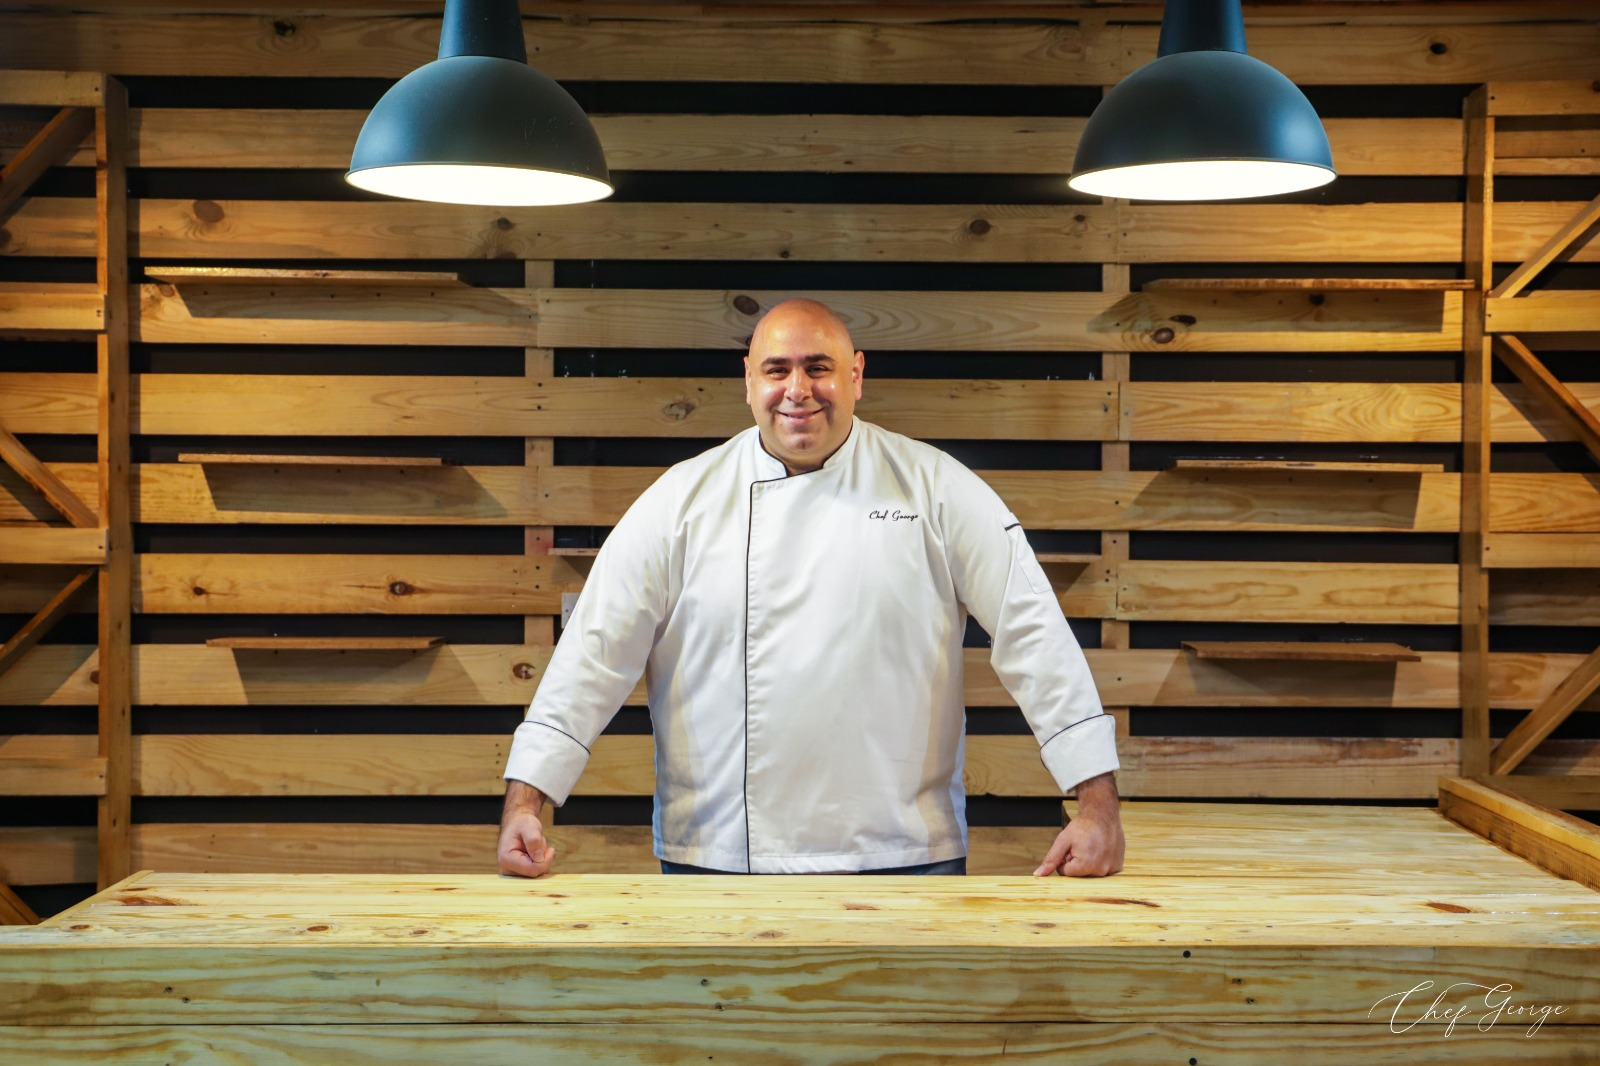 Chef George Ghorayeb is the Owner of the Largest Biryani Dish in Qatar